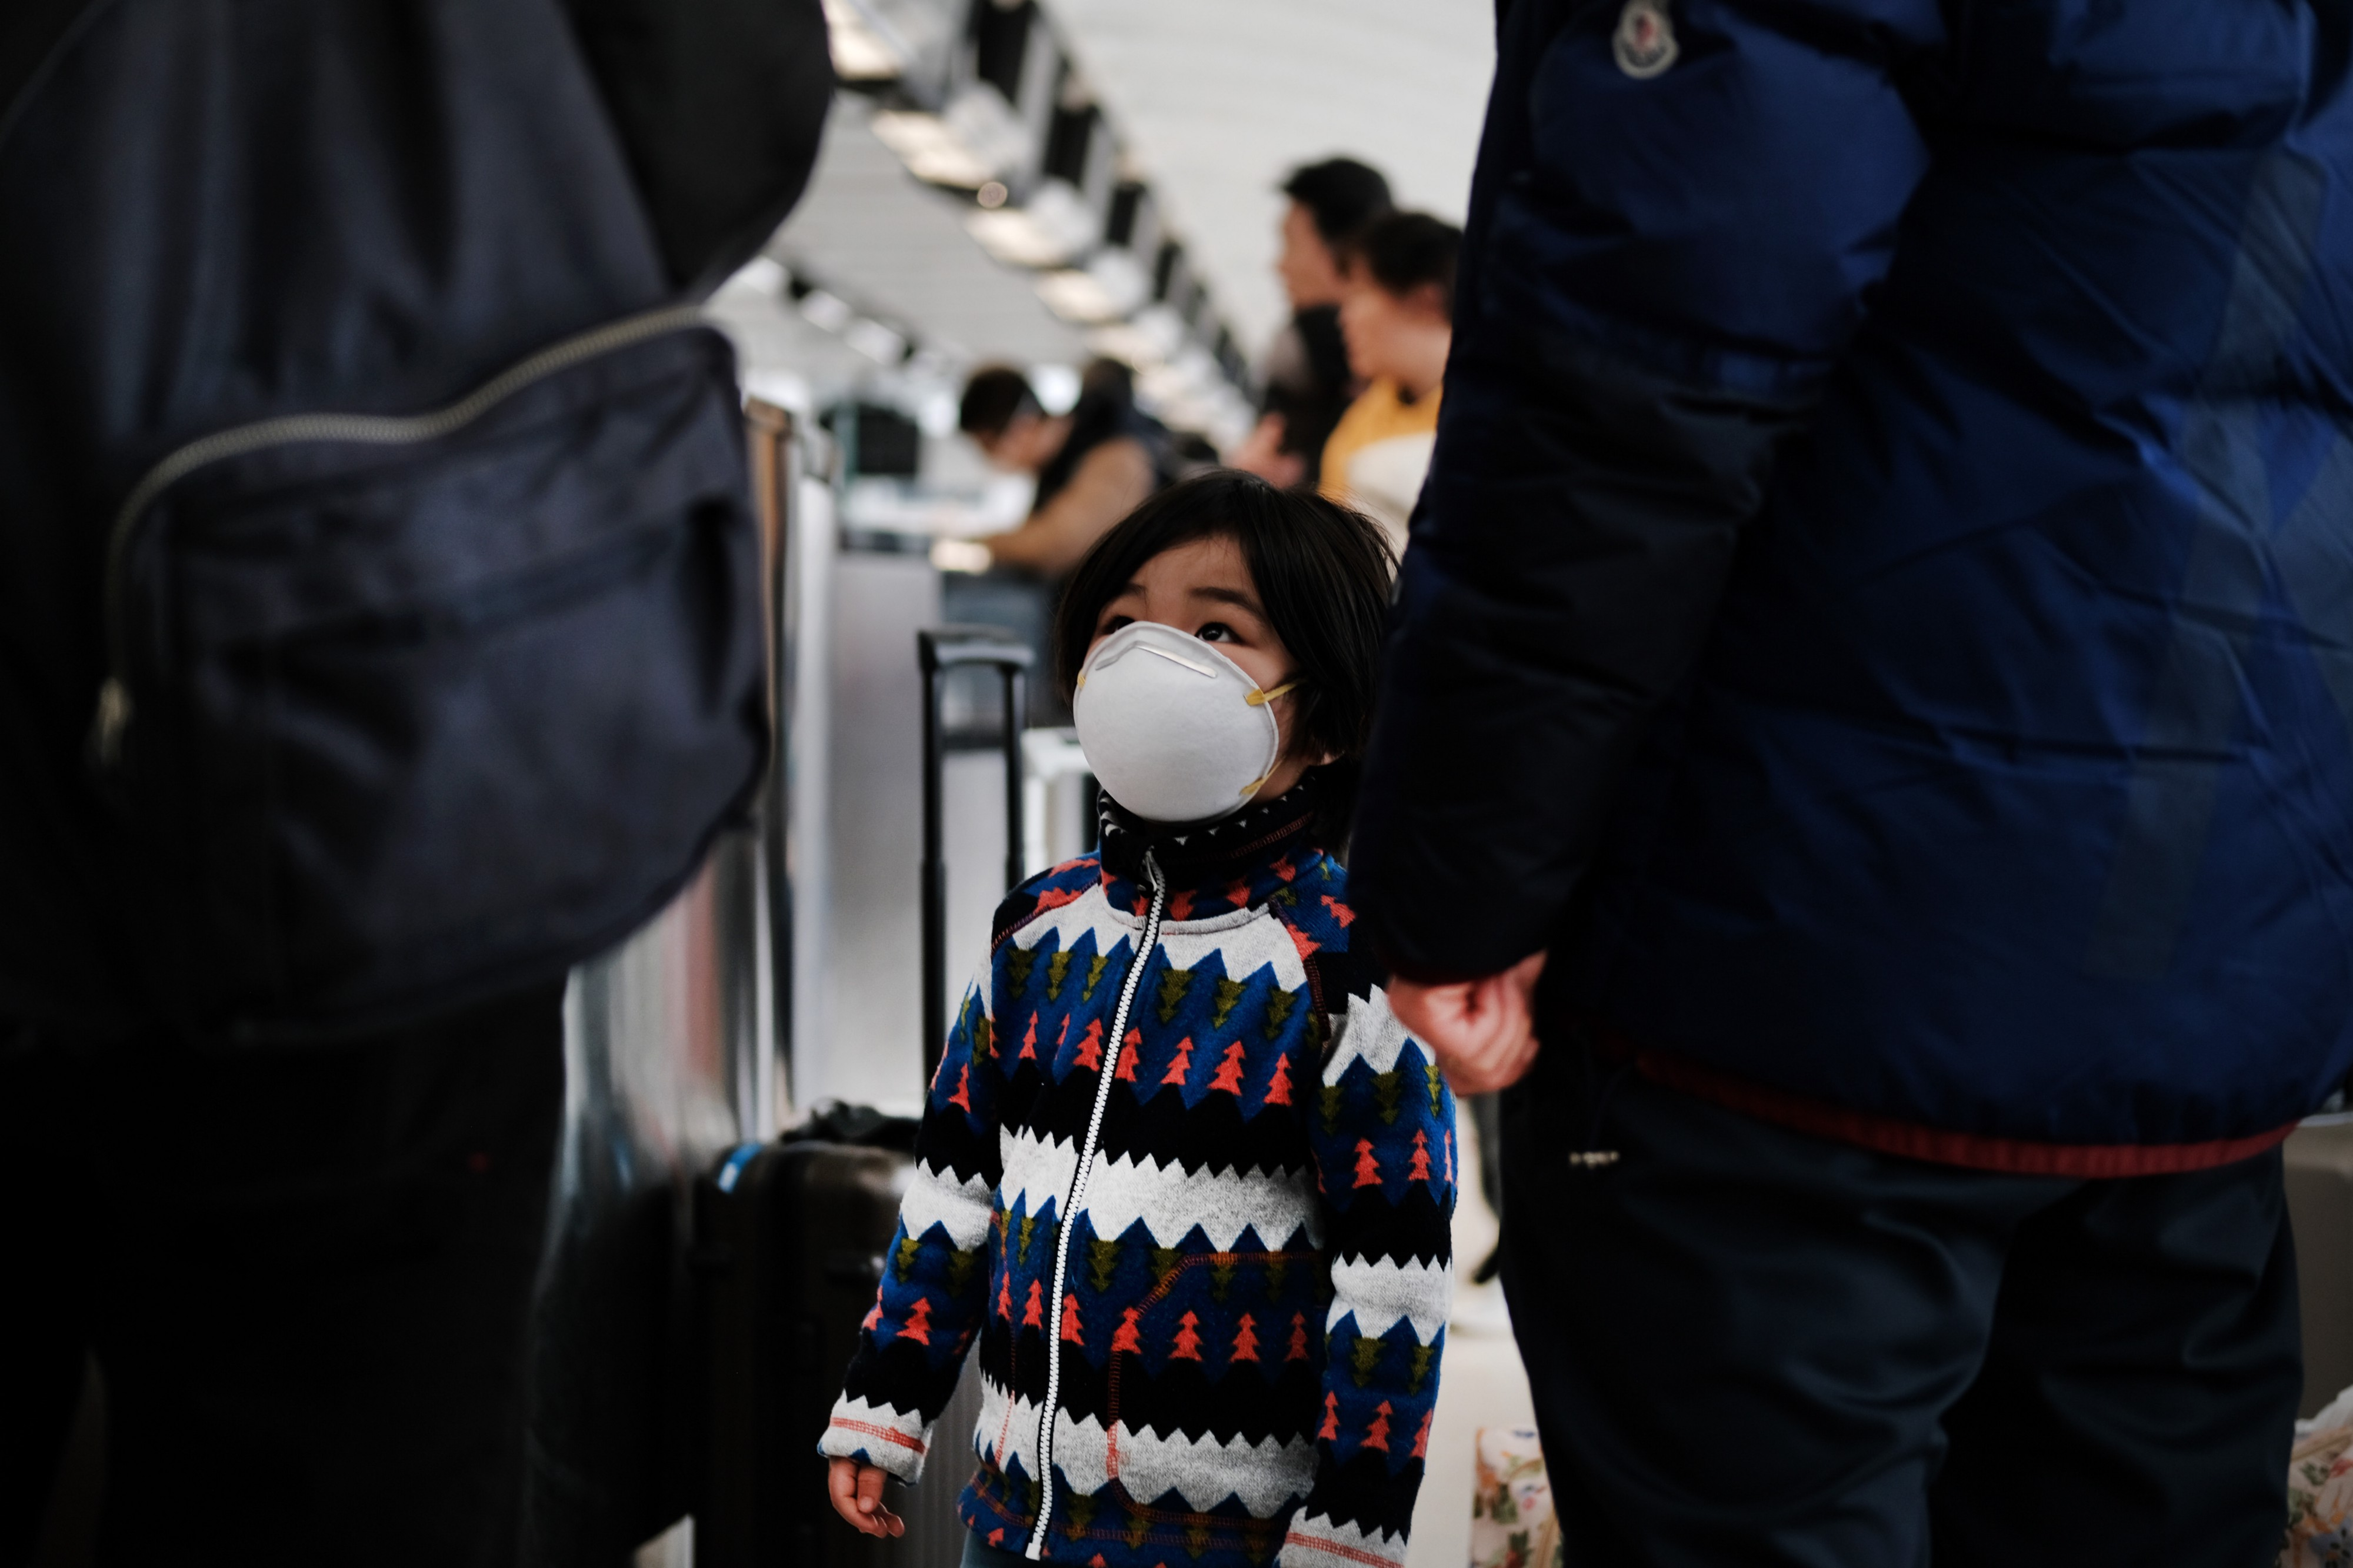 A child wears a medical mask out of concern over the Coronavirus at the JFK terminal that serves planes bound for China.